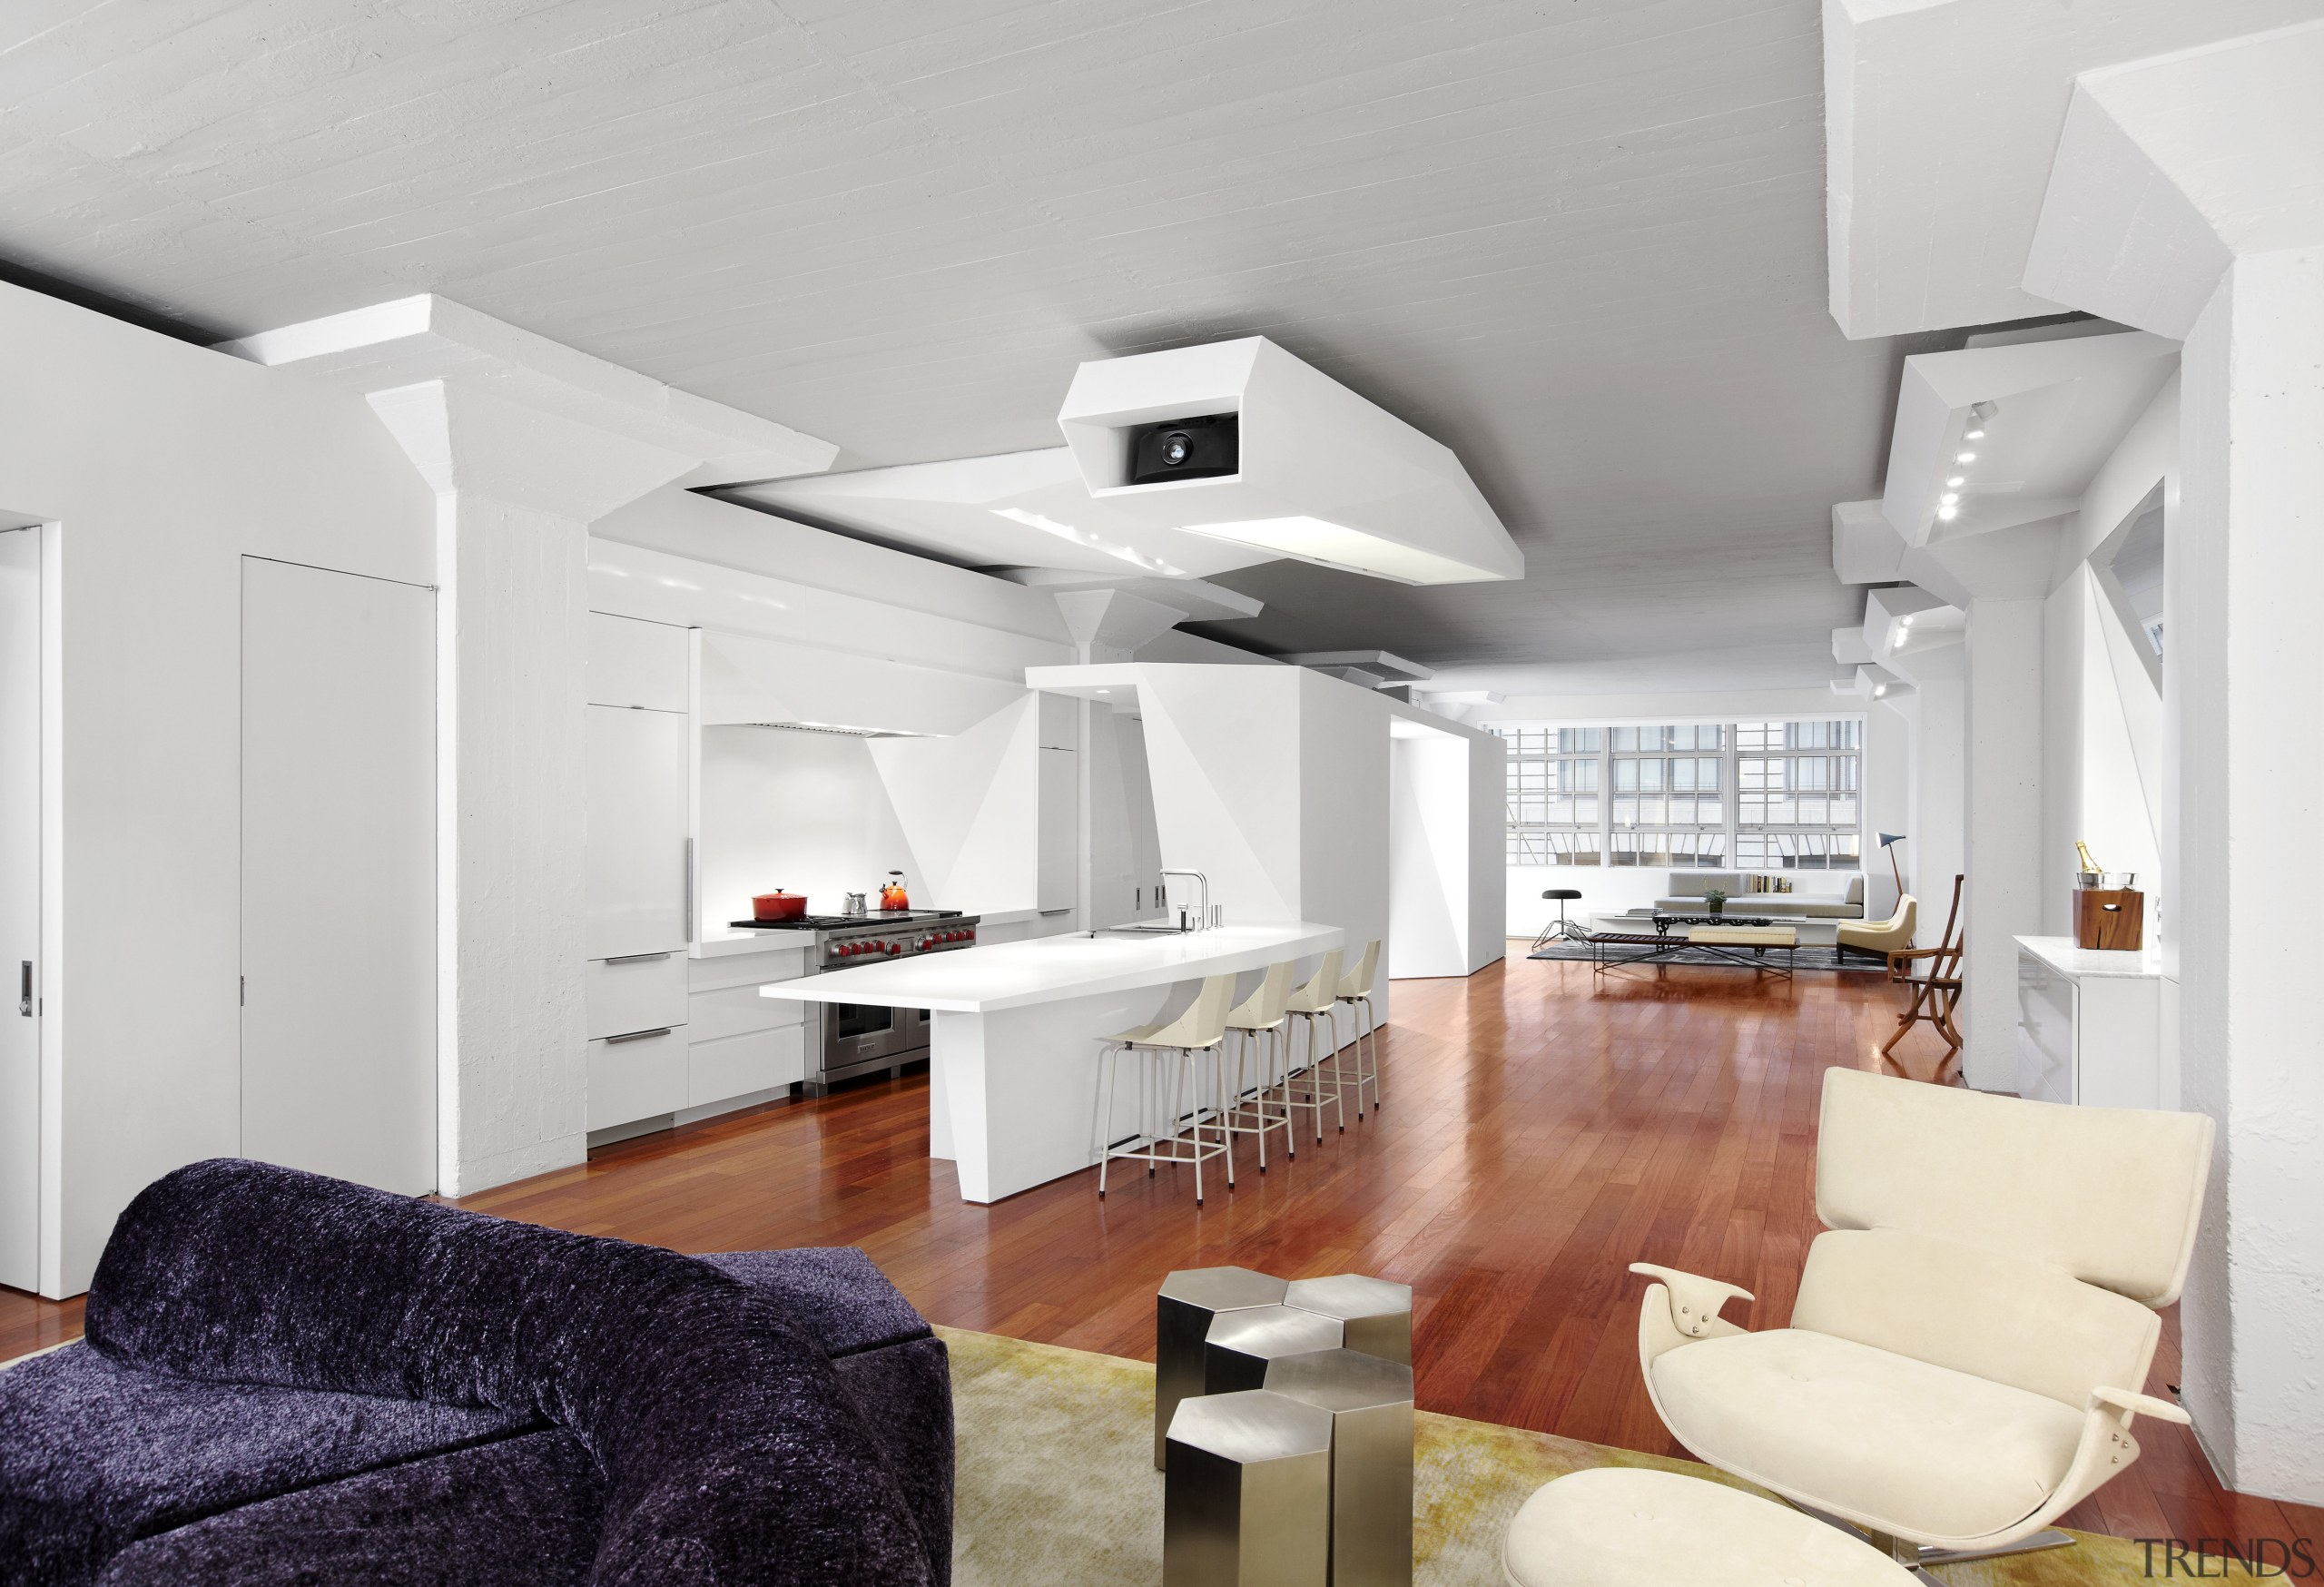 Here is a view of a kitchen designed ceiling, floor, home, interior design, interior designer, living room, room, white